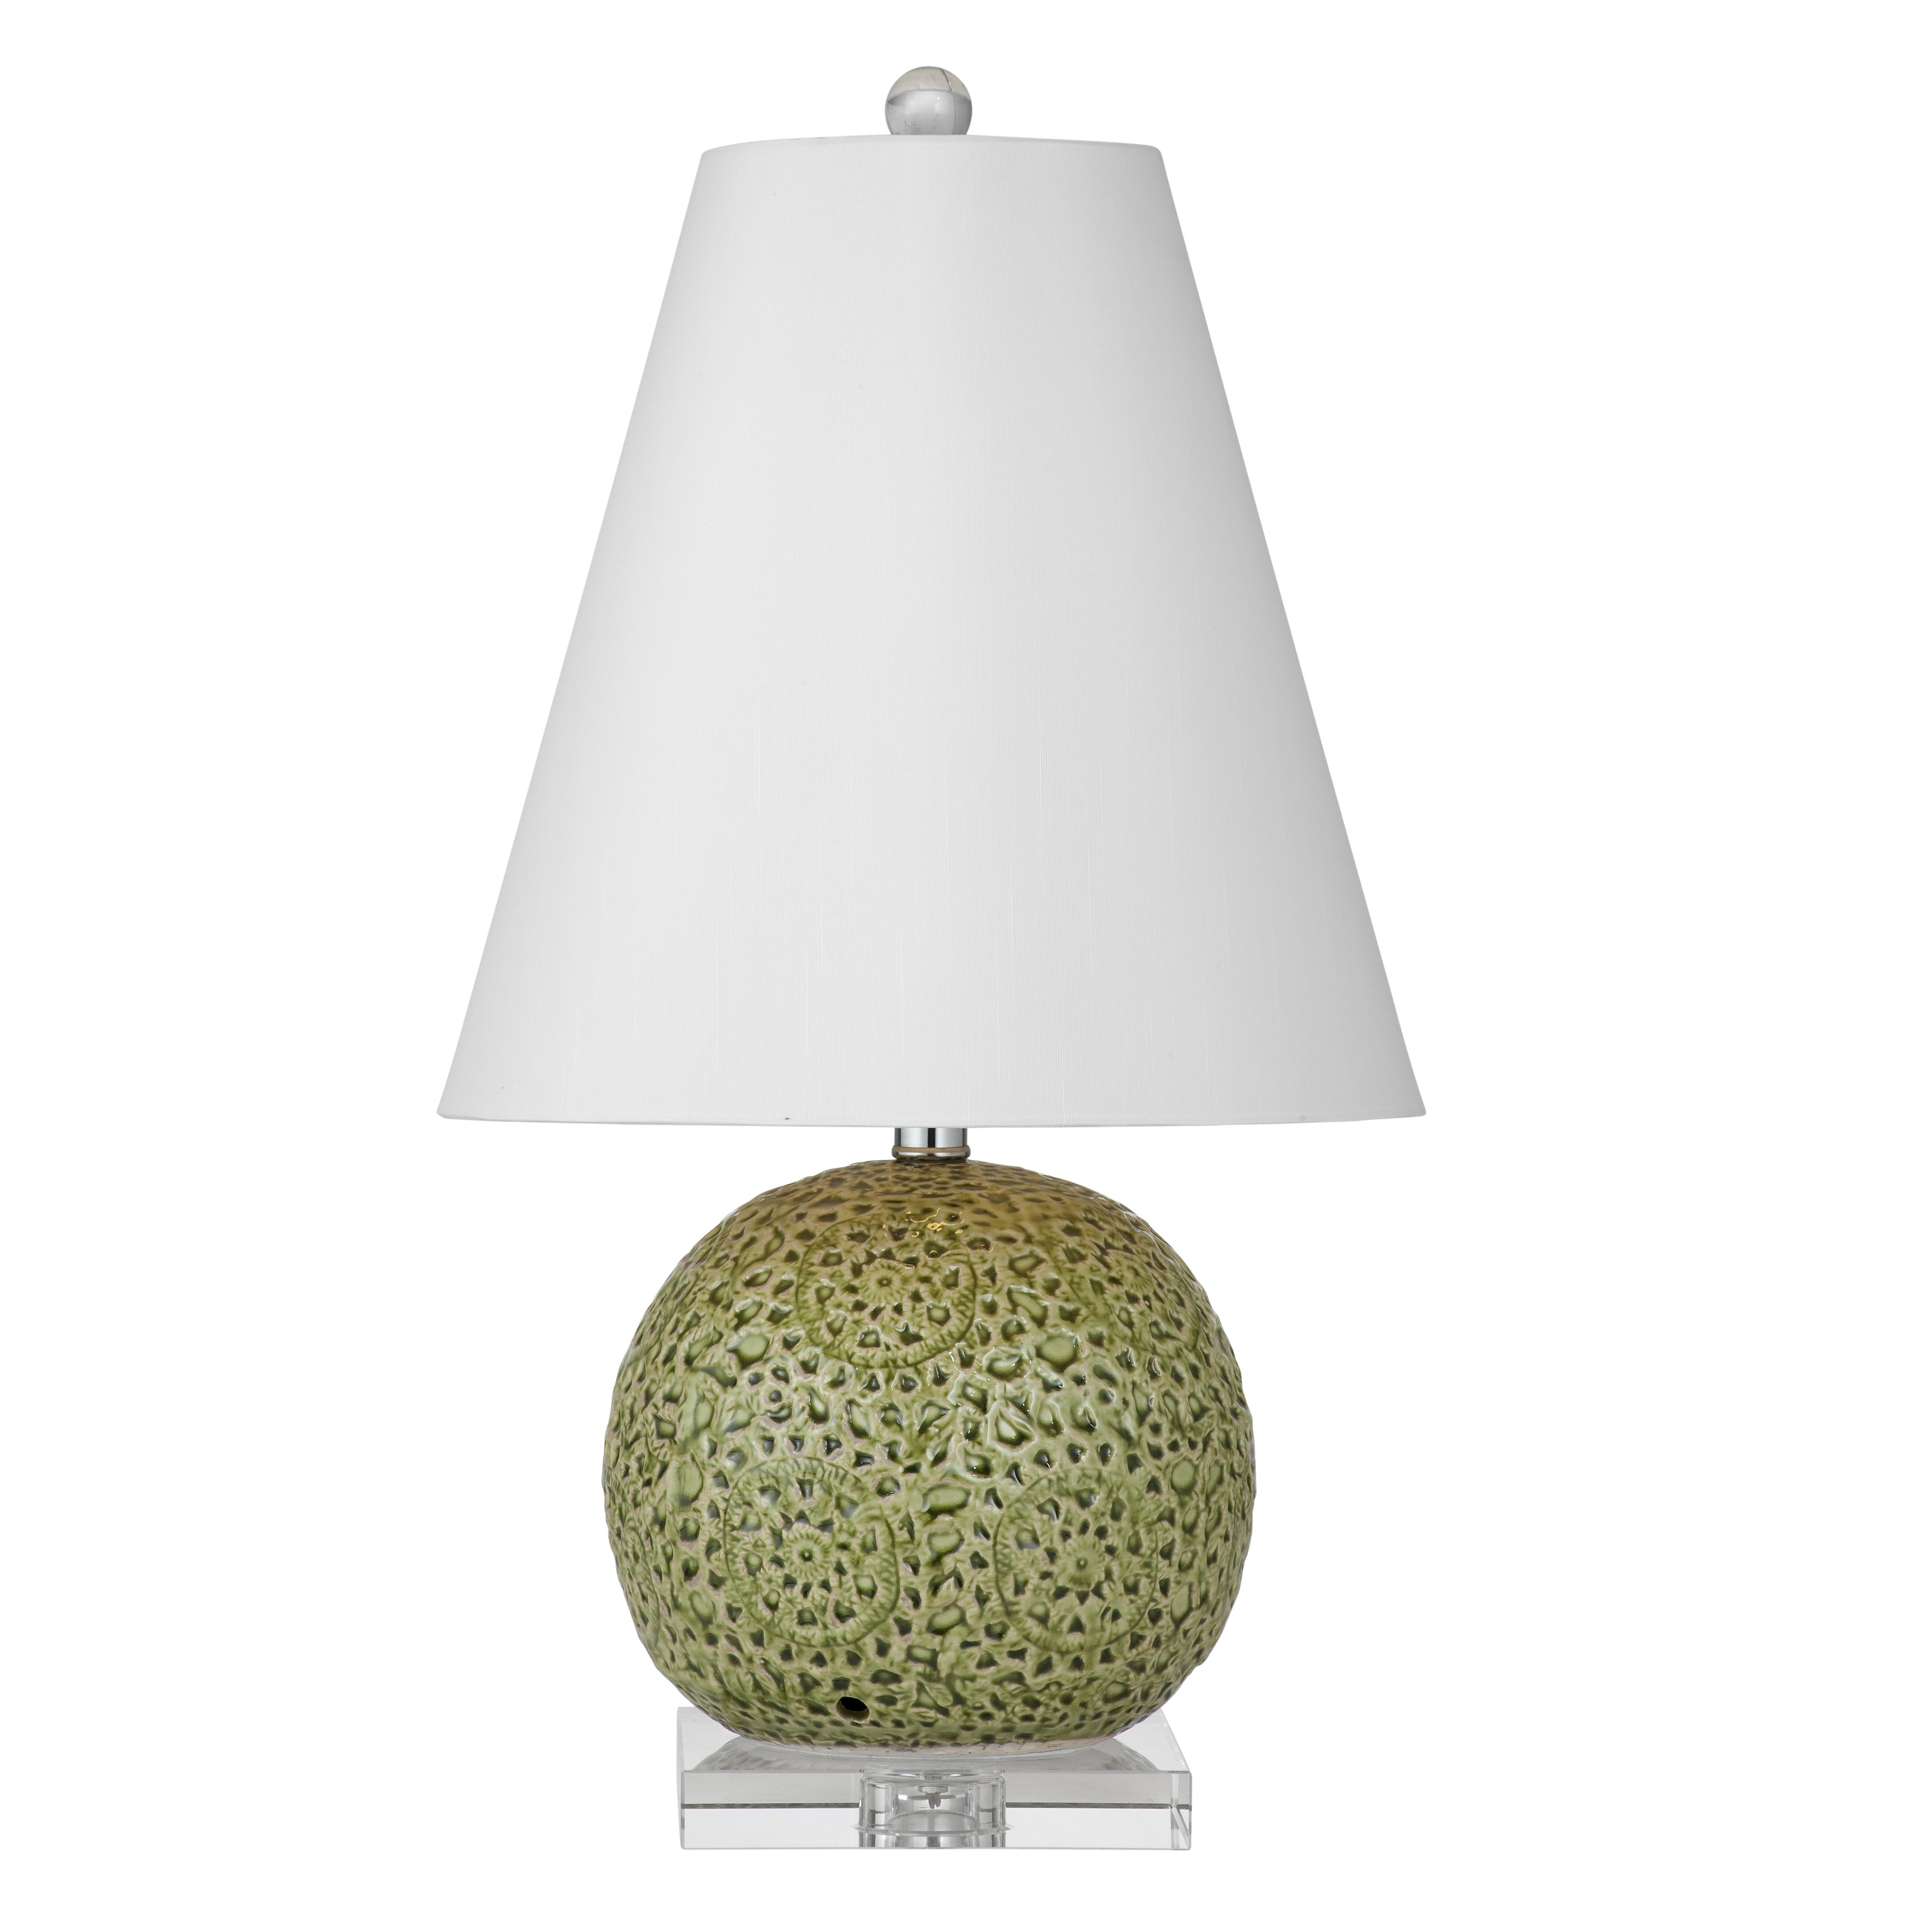 Old World Shayne Table Lamp by Bassett Mirror at Alison Craig Home Furnishings